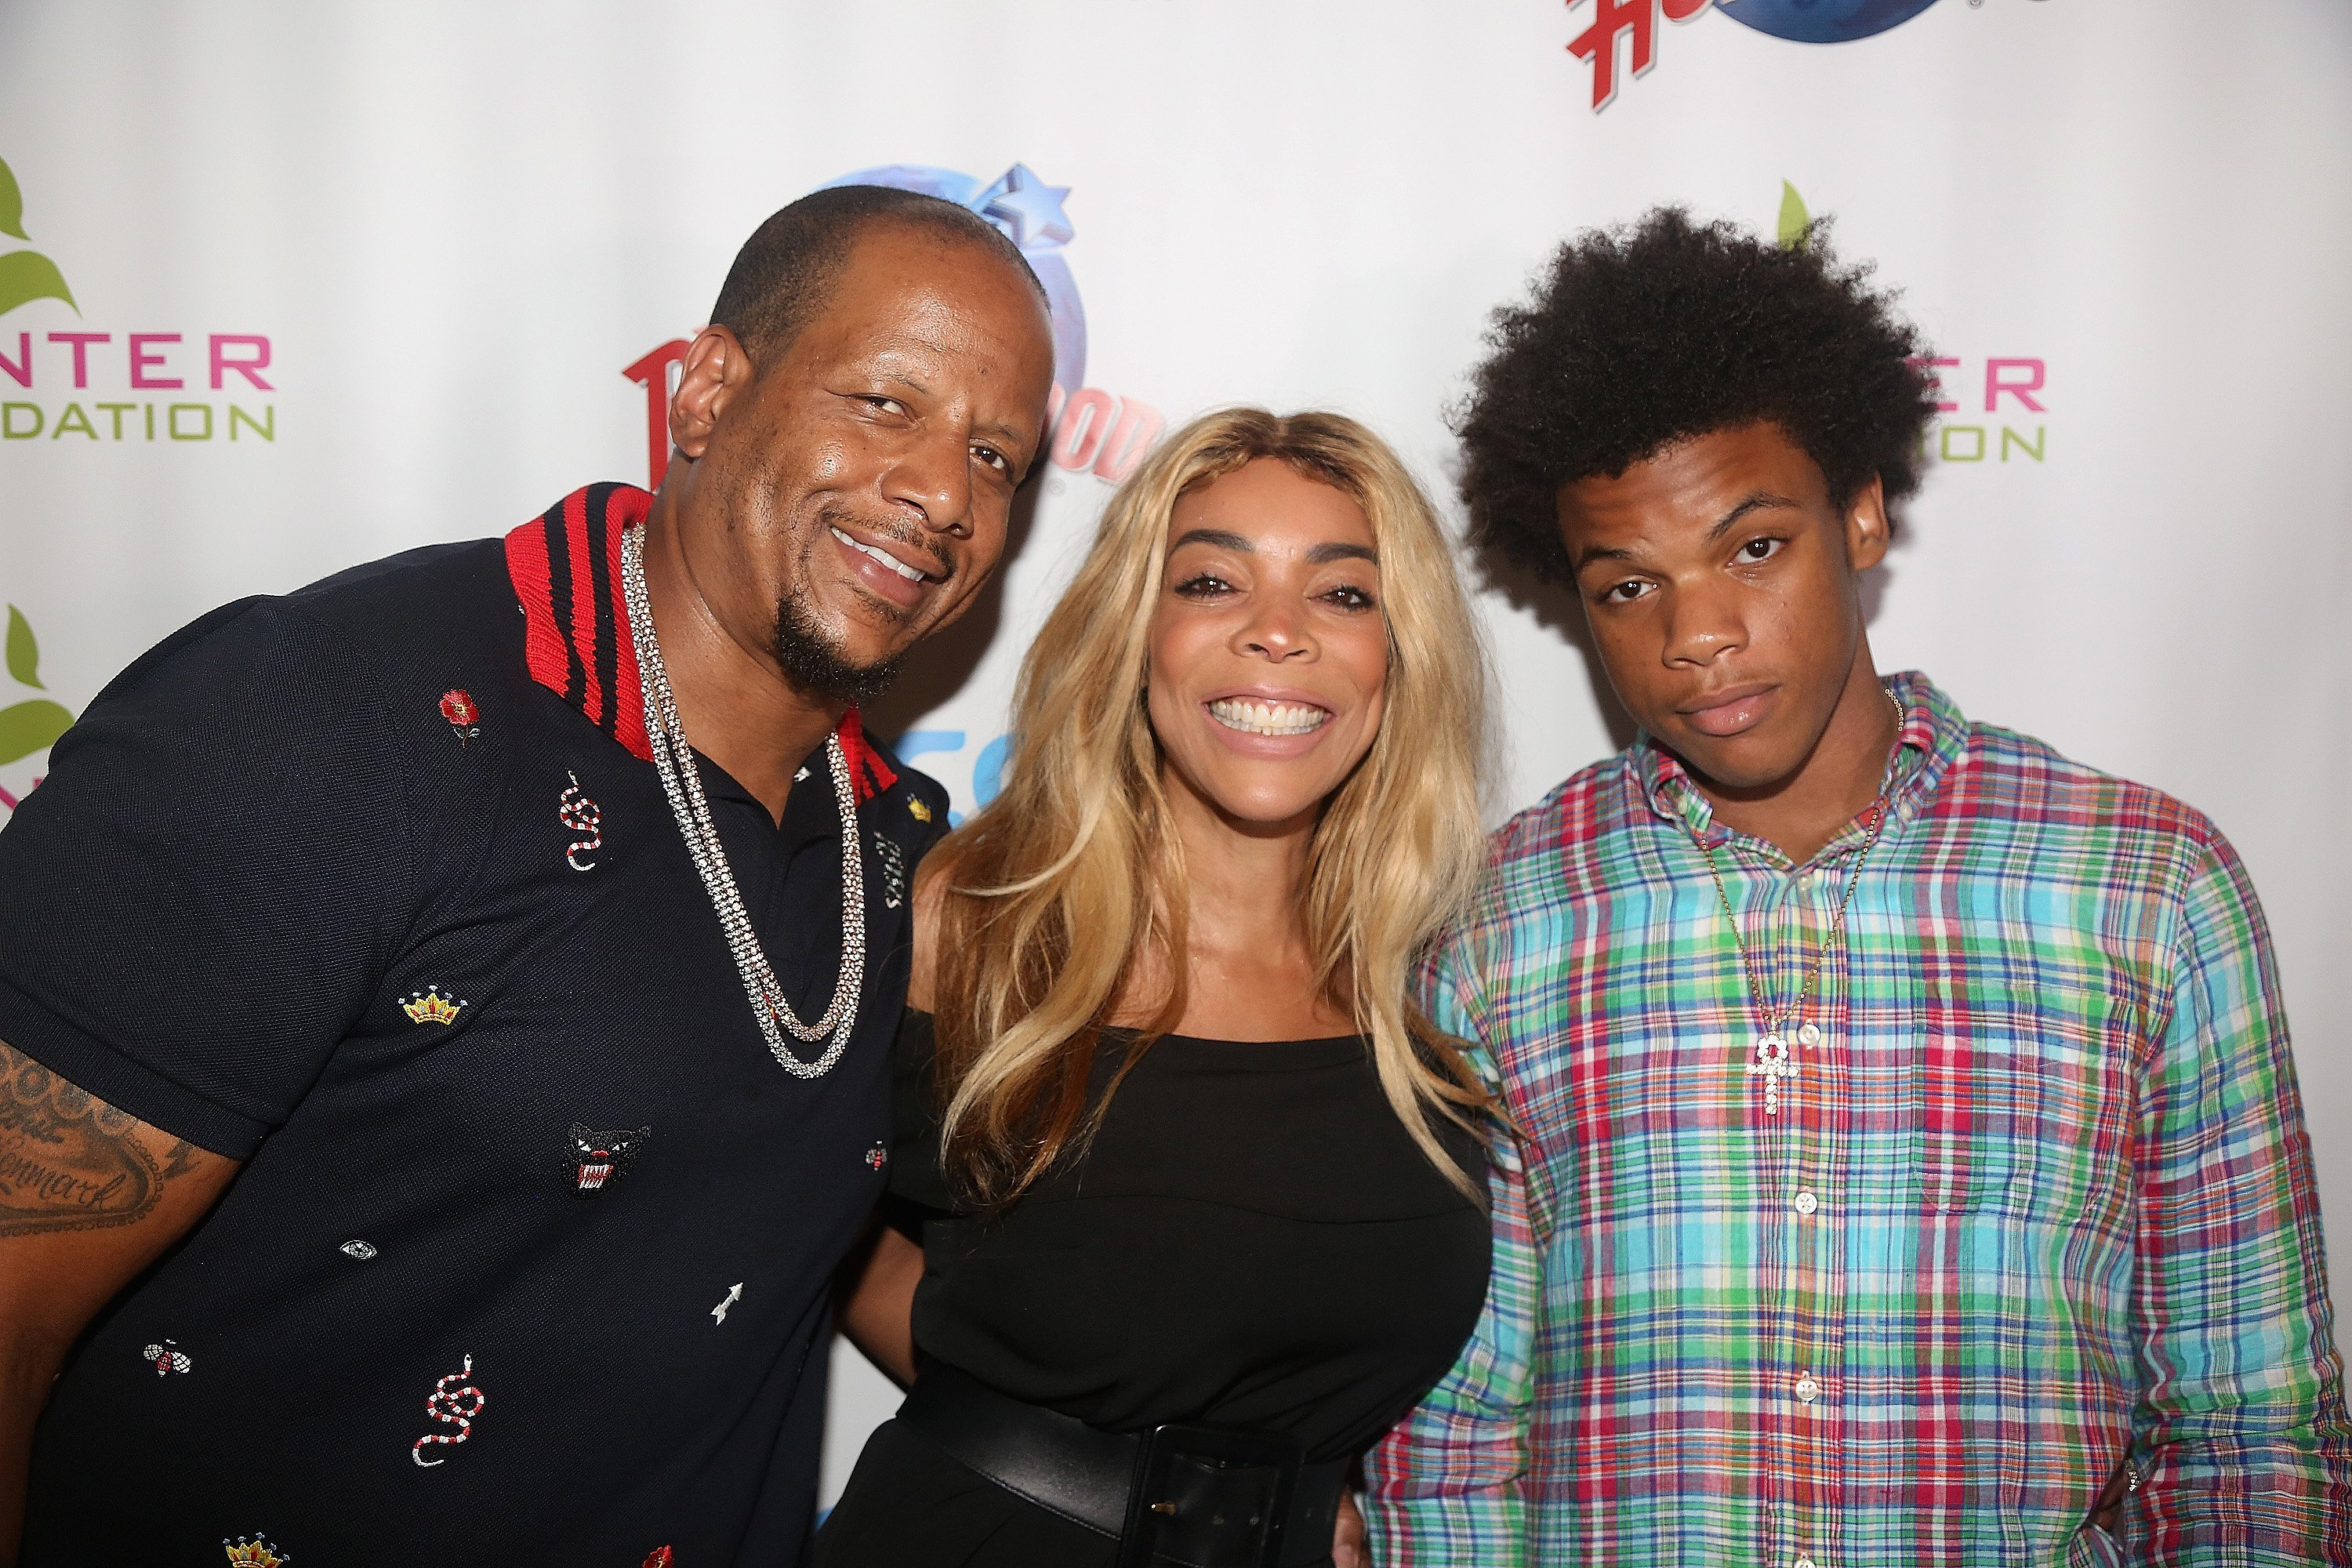 Kevin Hunter Sr., Wendy Williams, and their son Kevin Hunter Jr. | Photo: Getty Images